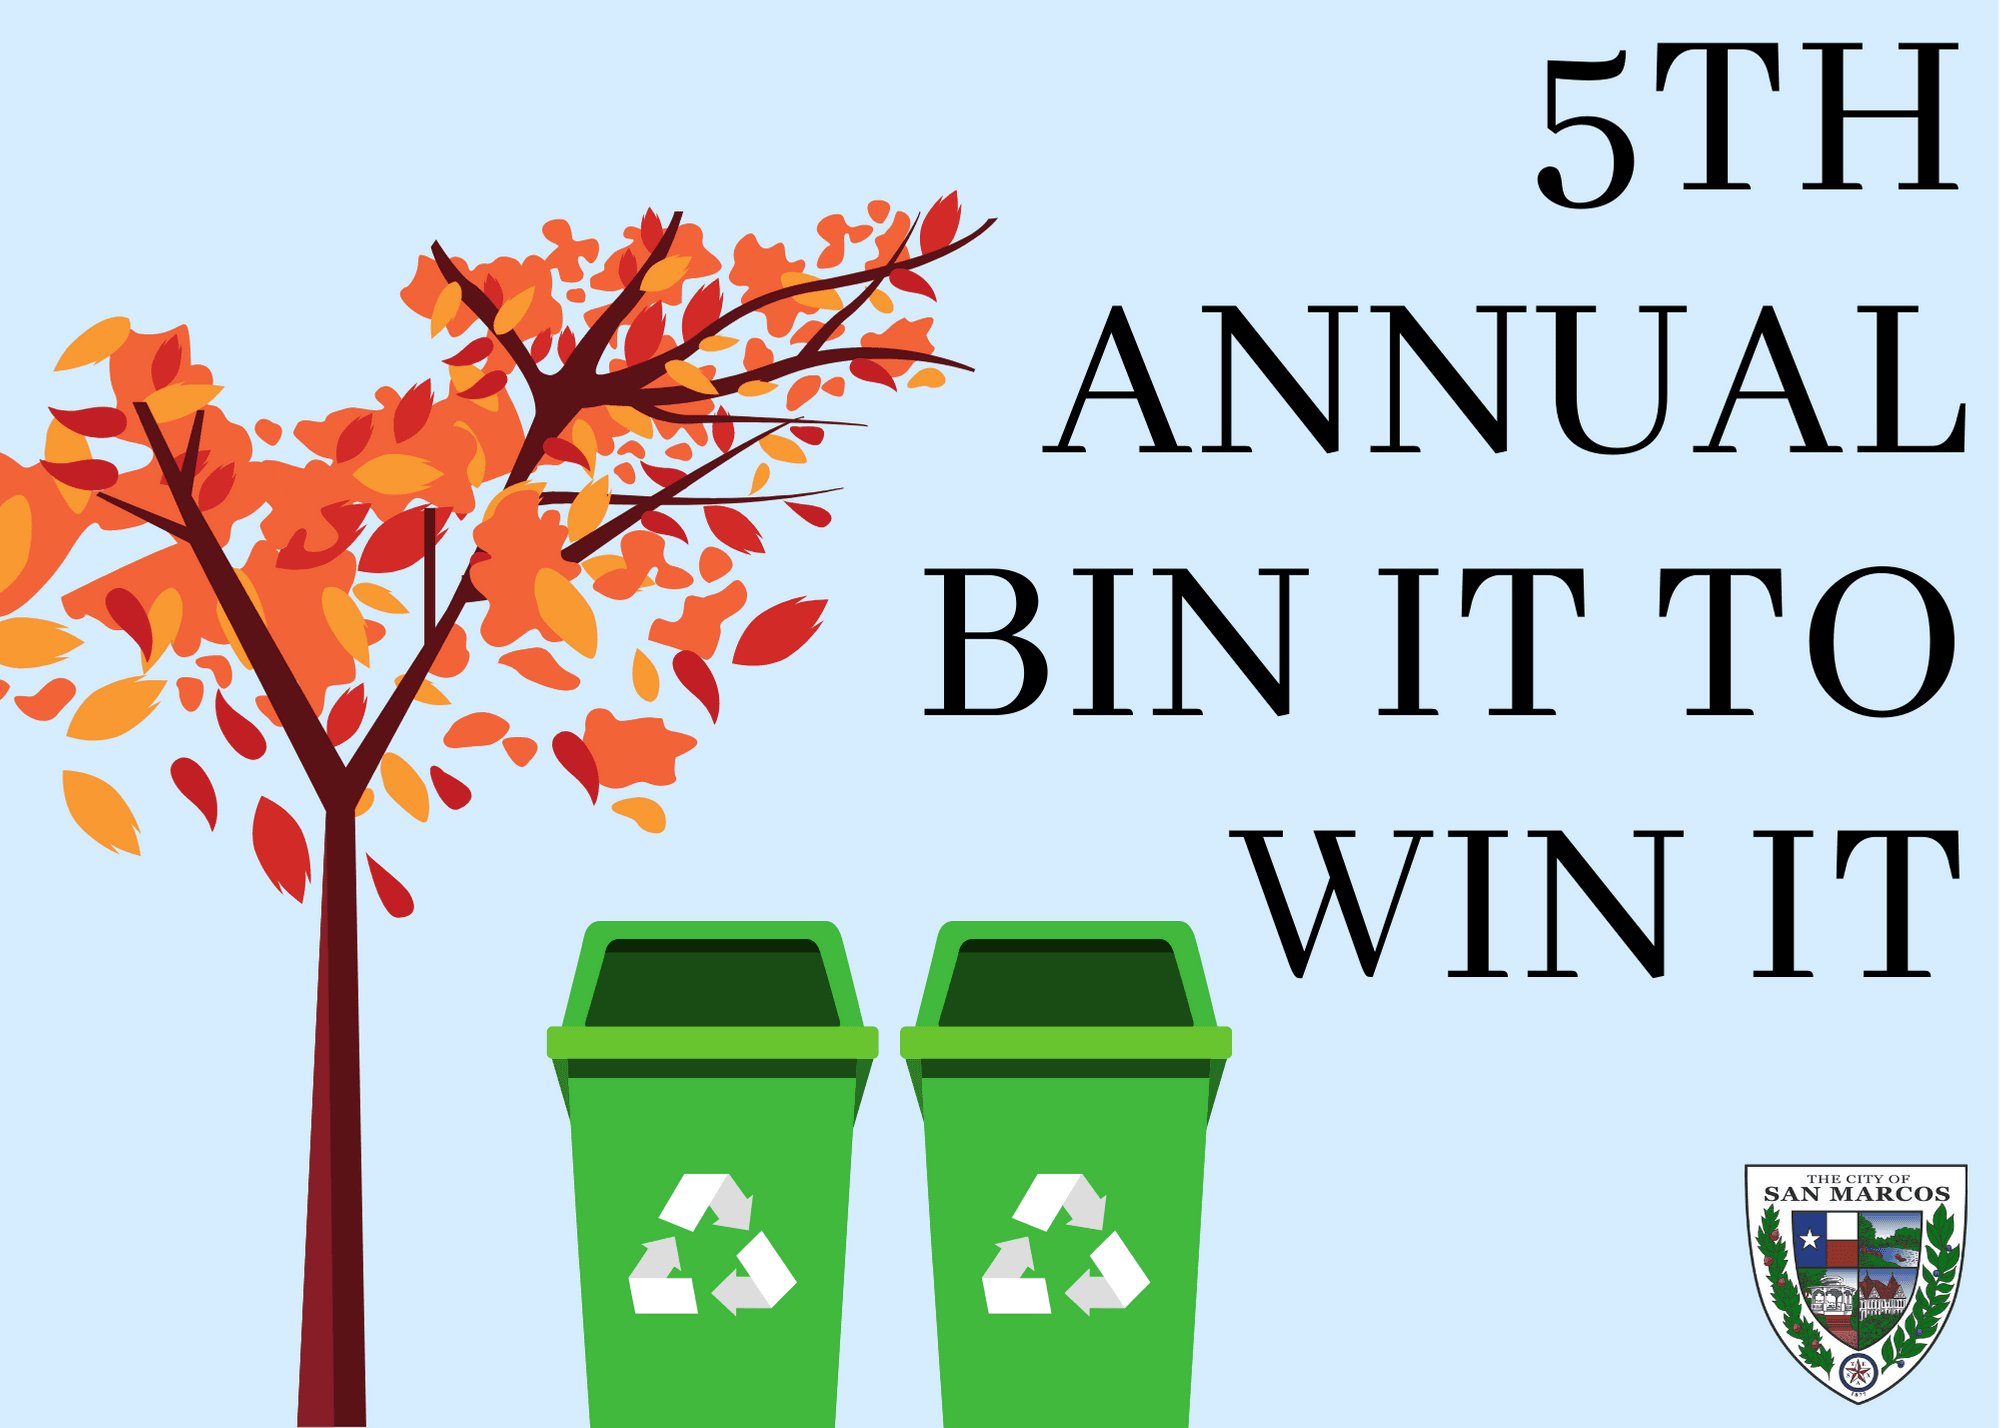 Tree and two recycling trash cans graphic